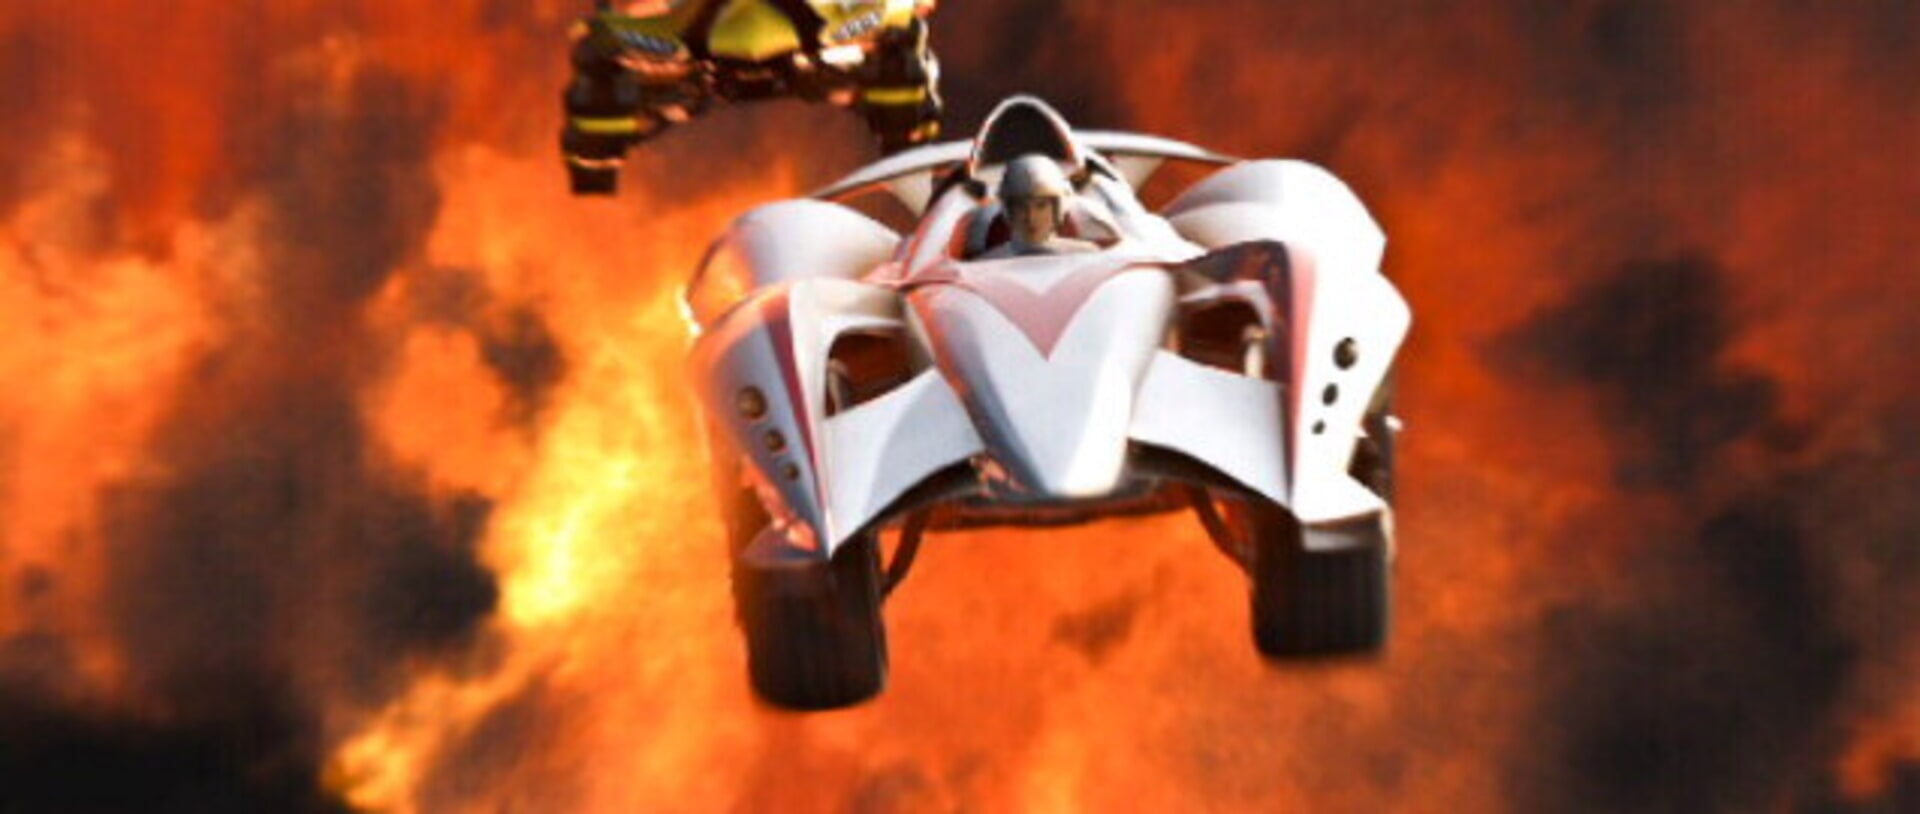 Speed Racer - Image 2